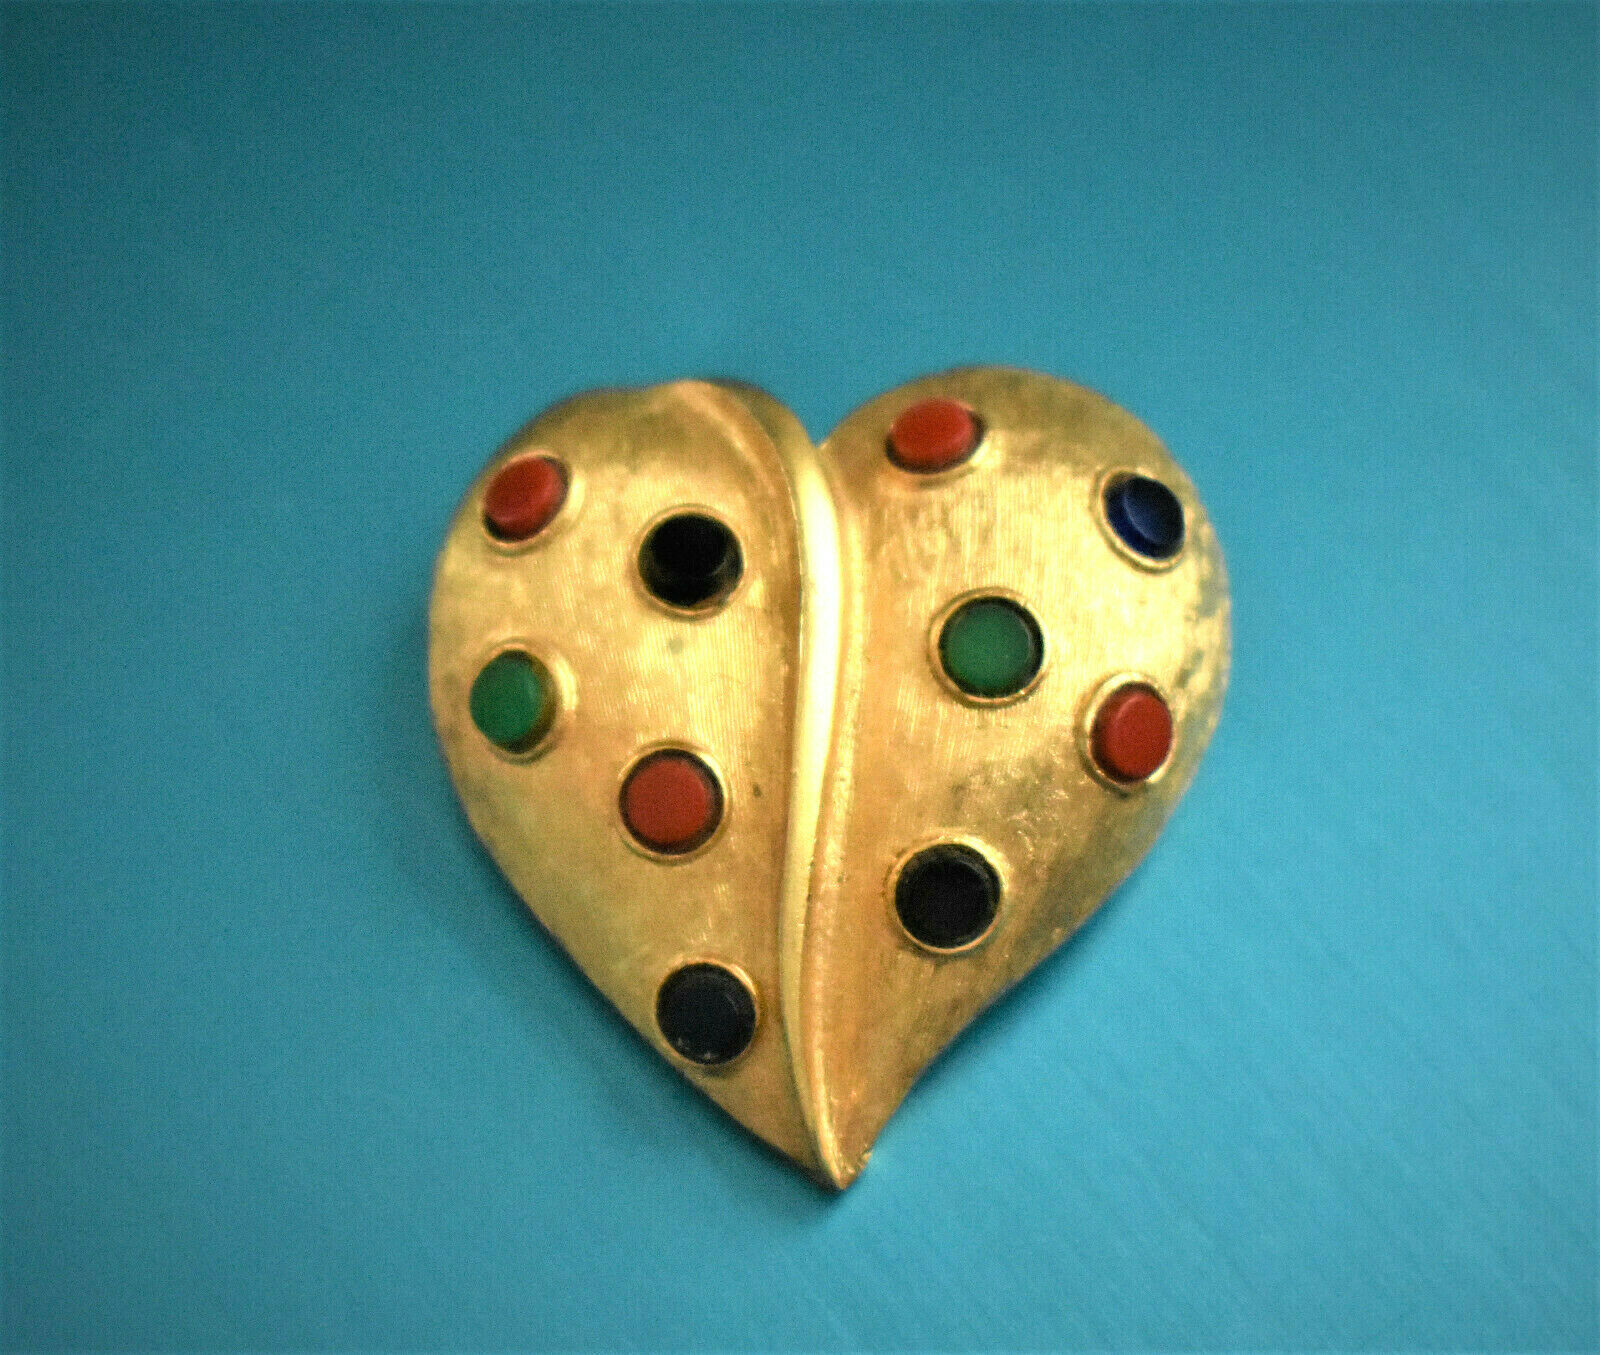 FABULOUS RARE SIGNED KRAMER COLORFUL POLKA DOT HEART ENAMELED  BROOCH KB5